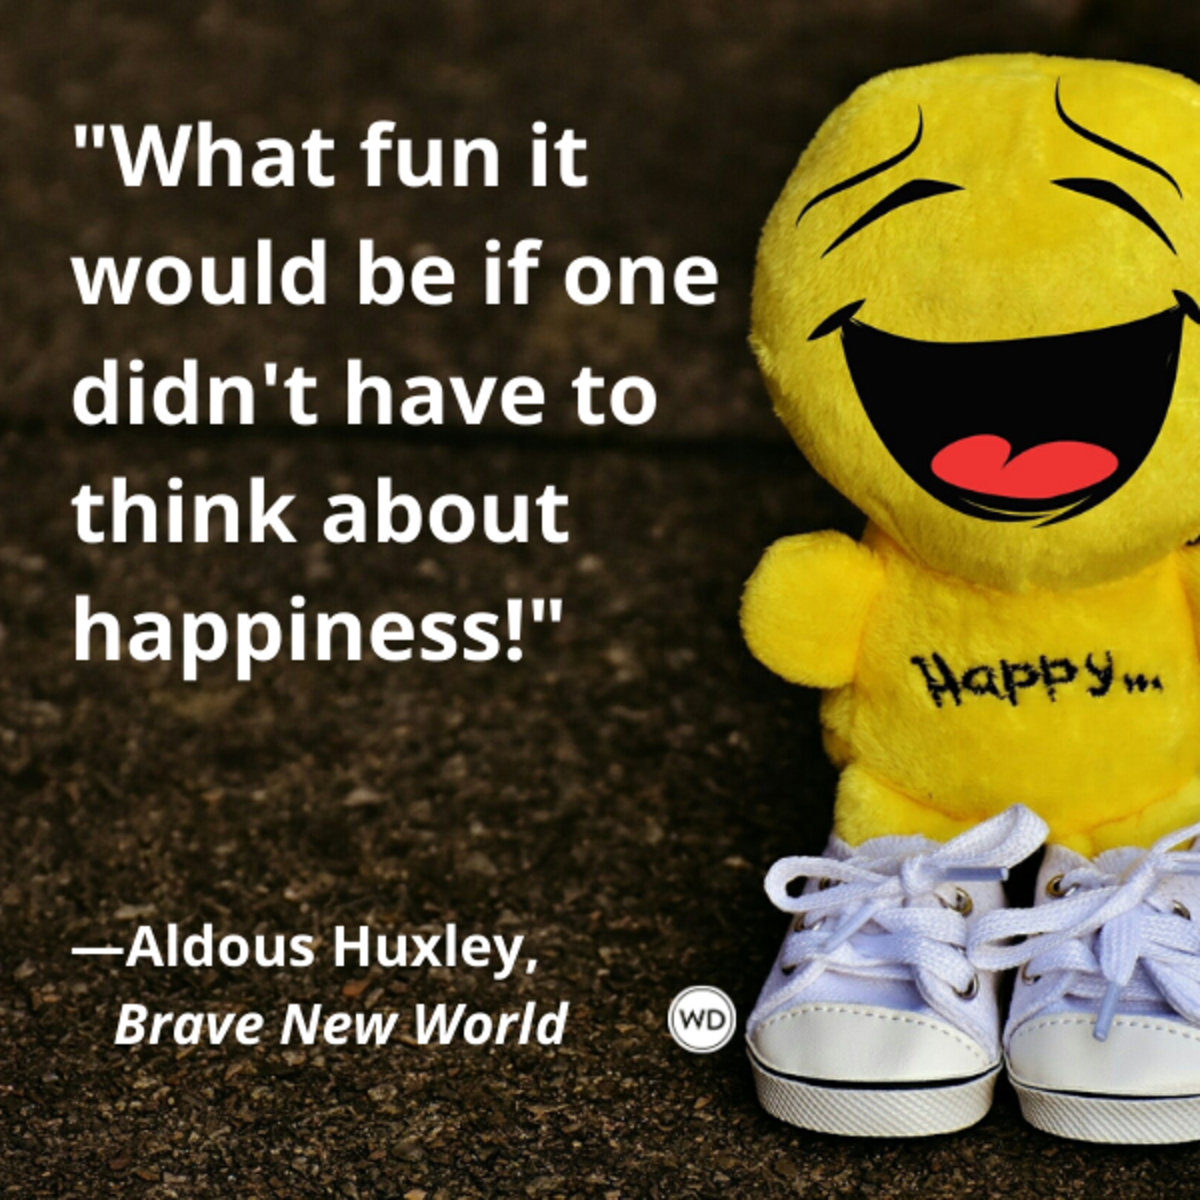 aldous_huxley_brave_new_world_quotes_what_fun_it_would_be_if_one_didnt_have_to_think_about_happiness